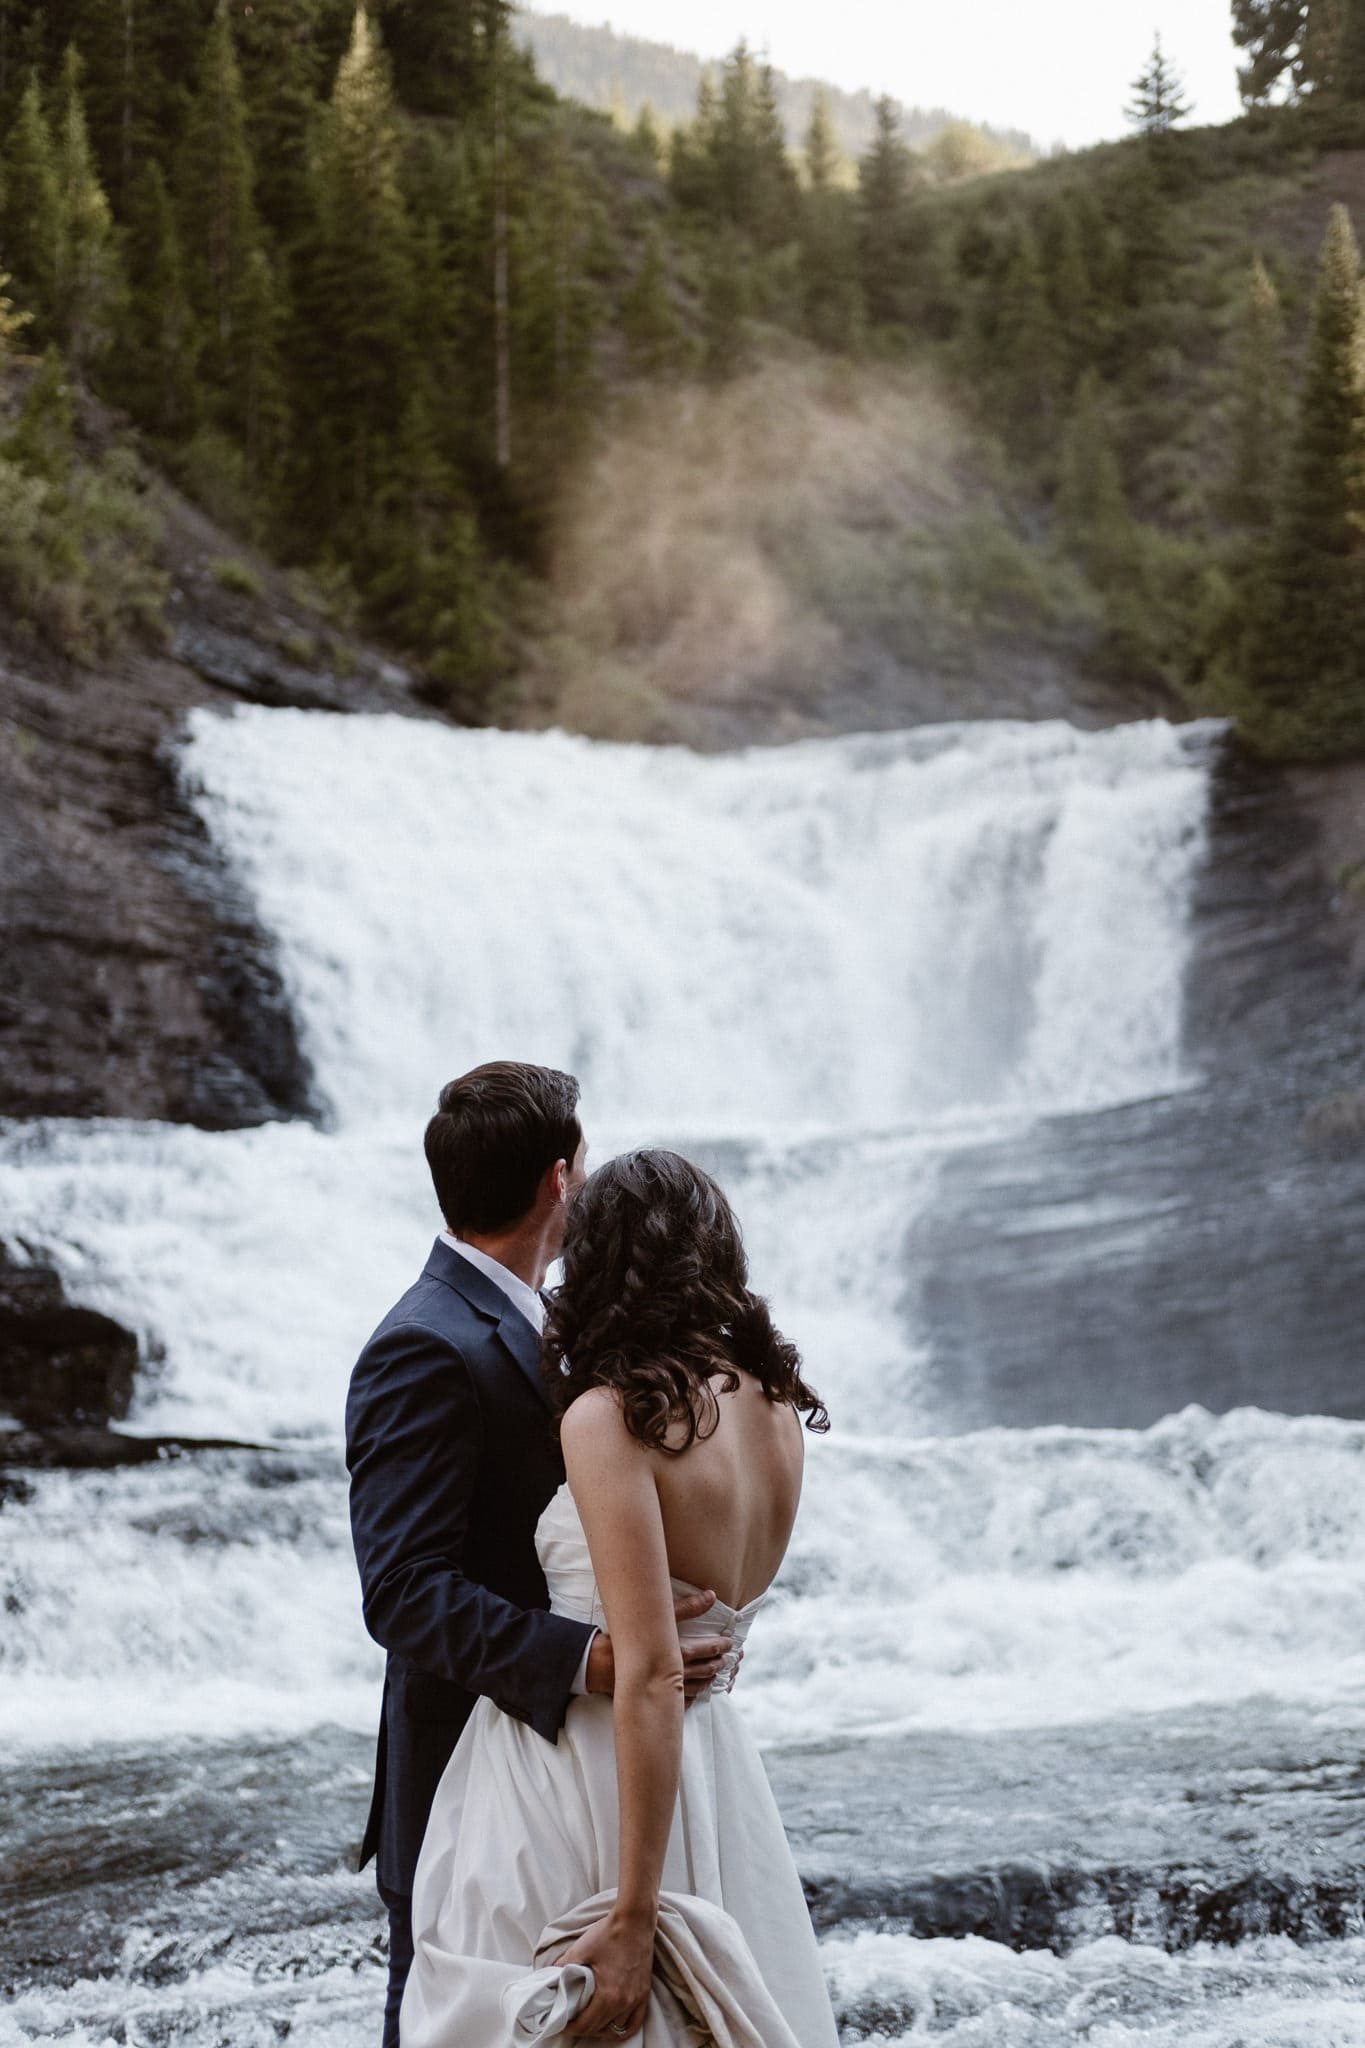 Crested Butte elopement photographer, Colorado adventure wedding photographer, bride and groom portraits at secret waterfall